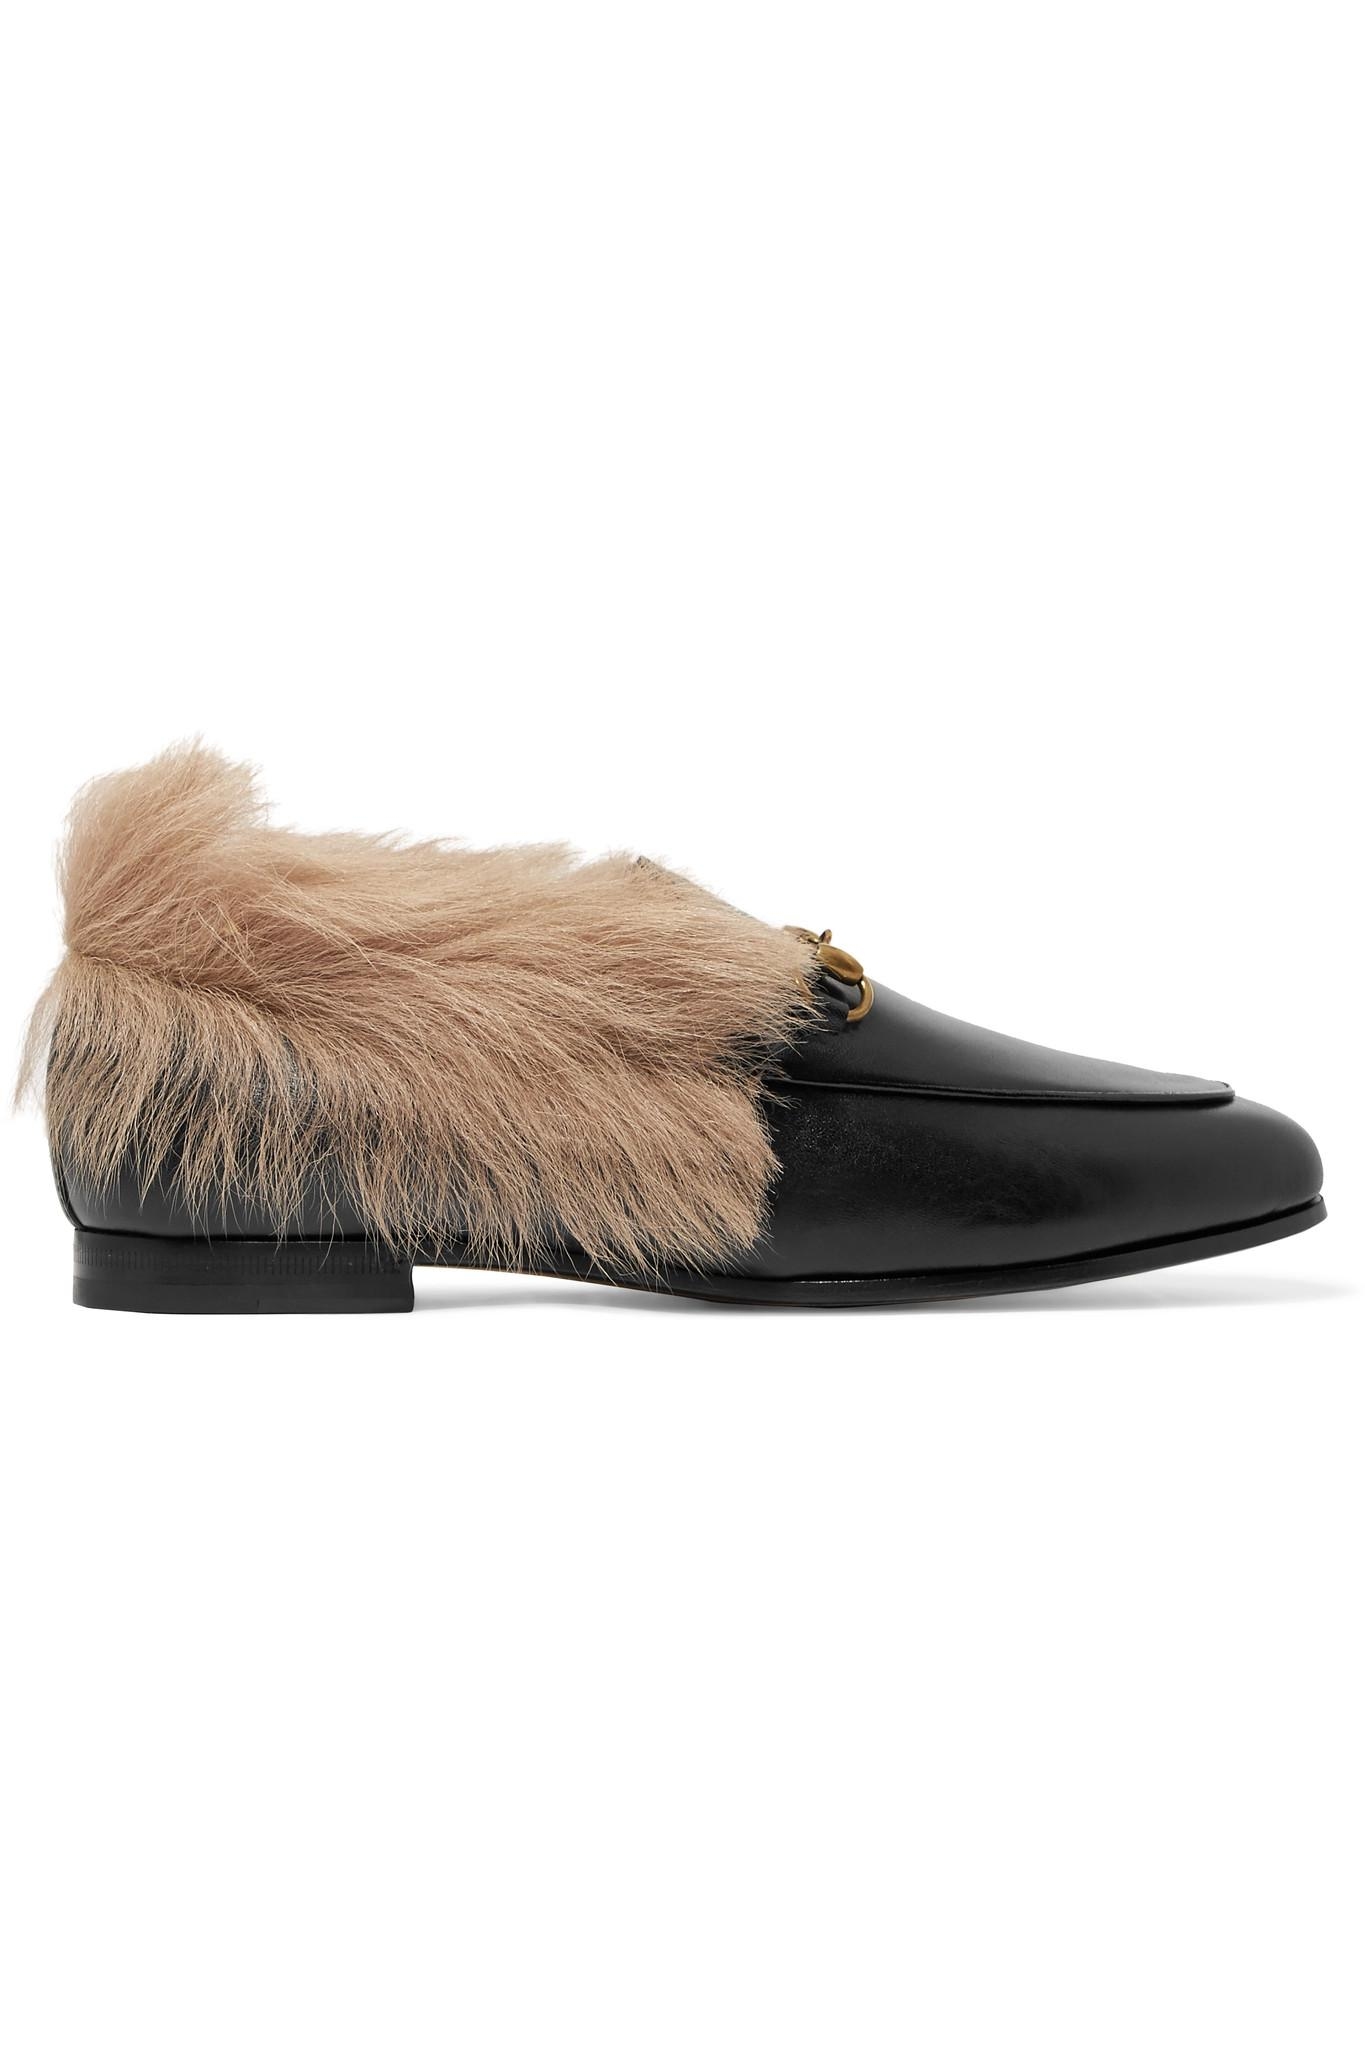 4993357e981 Gucci. Women s Black Jordaan Horsebit-detailed Shearling-lined Leather  Loafers